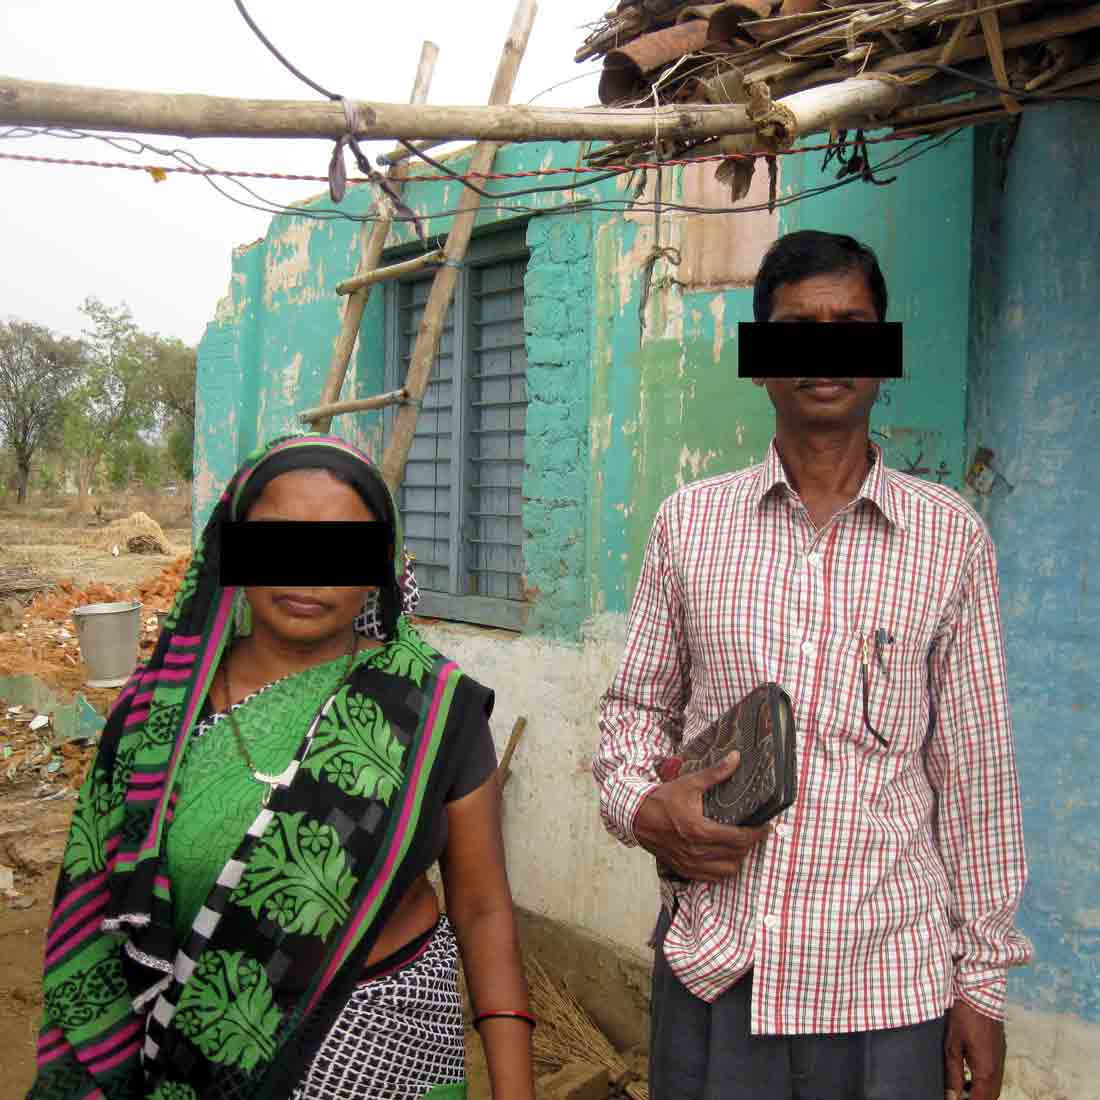 Anaram Bokar and his wife stand in front of their demolished living space.